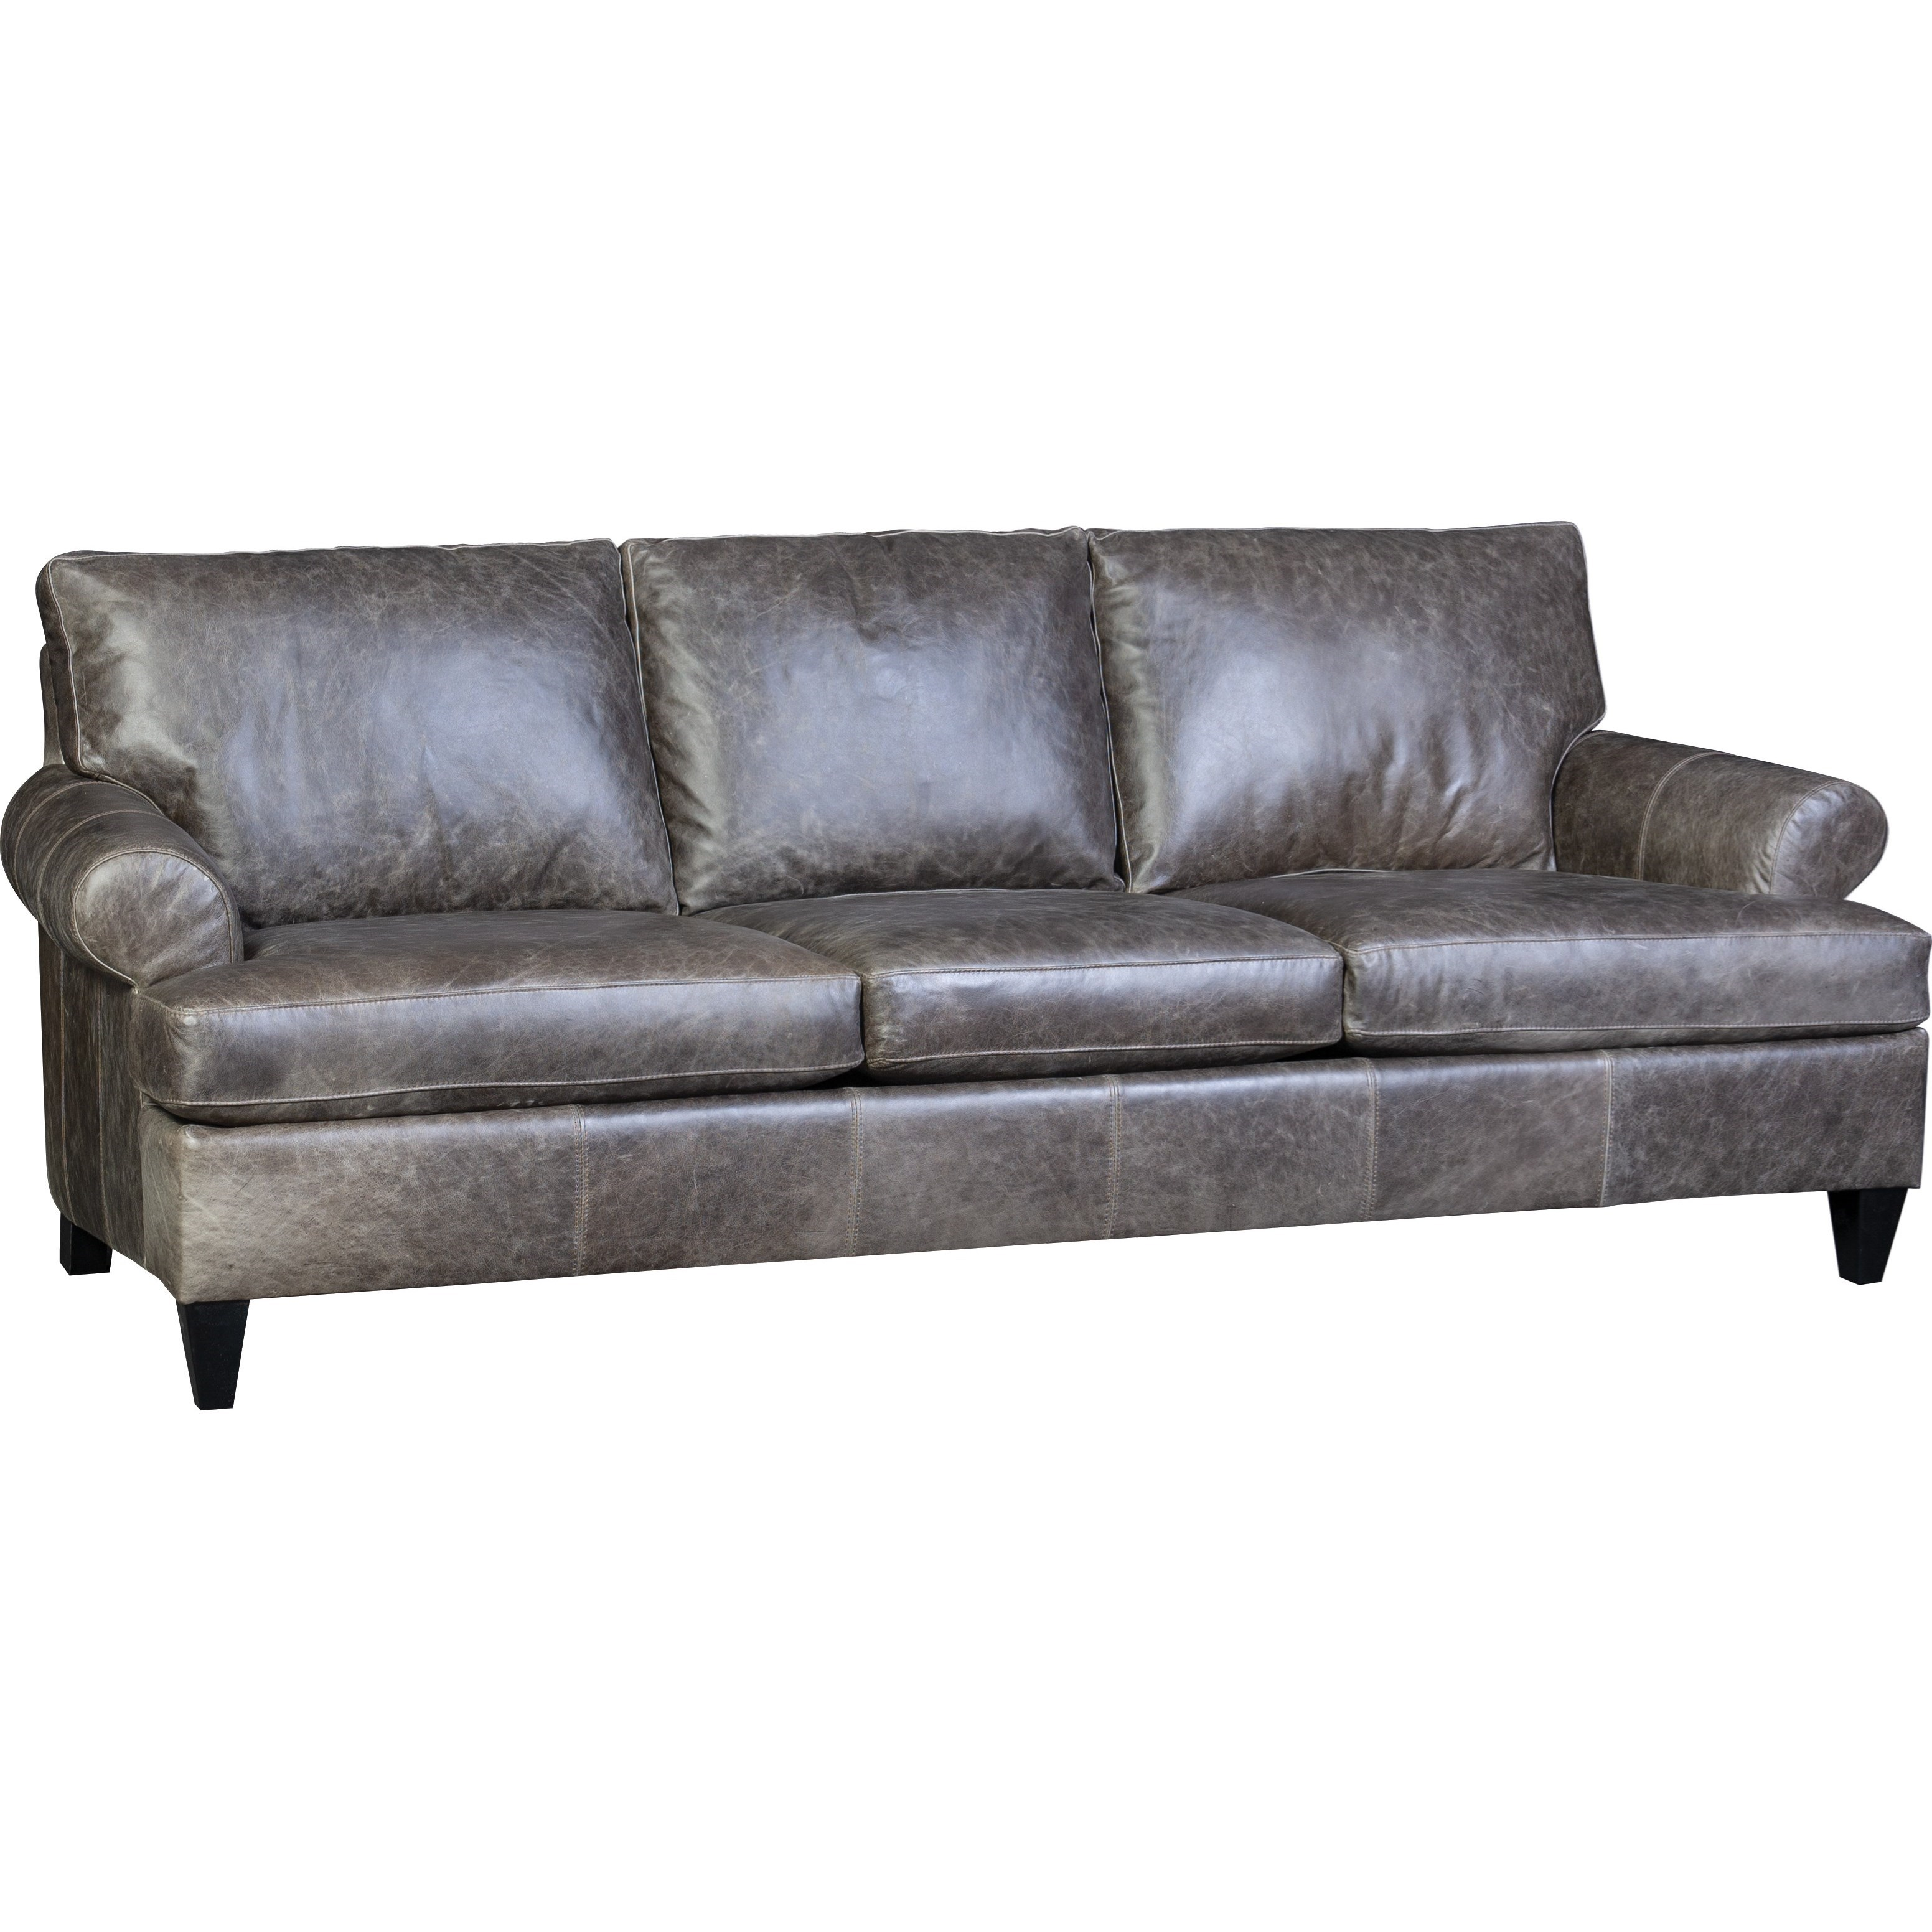 3270 Sofa by Mayo at Wilson's Furniture